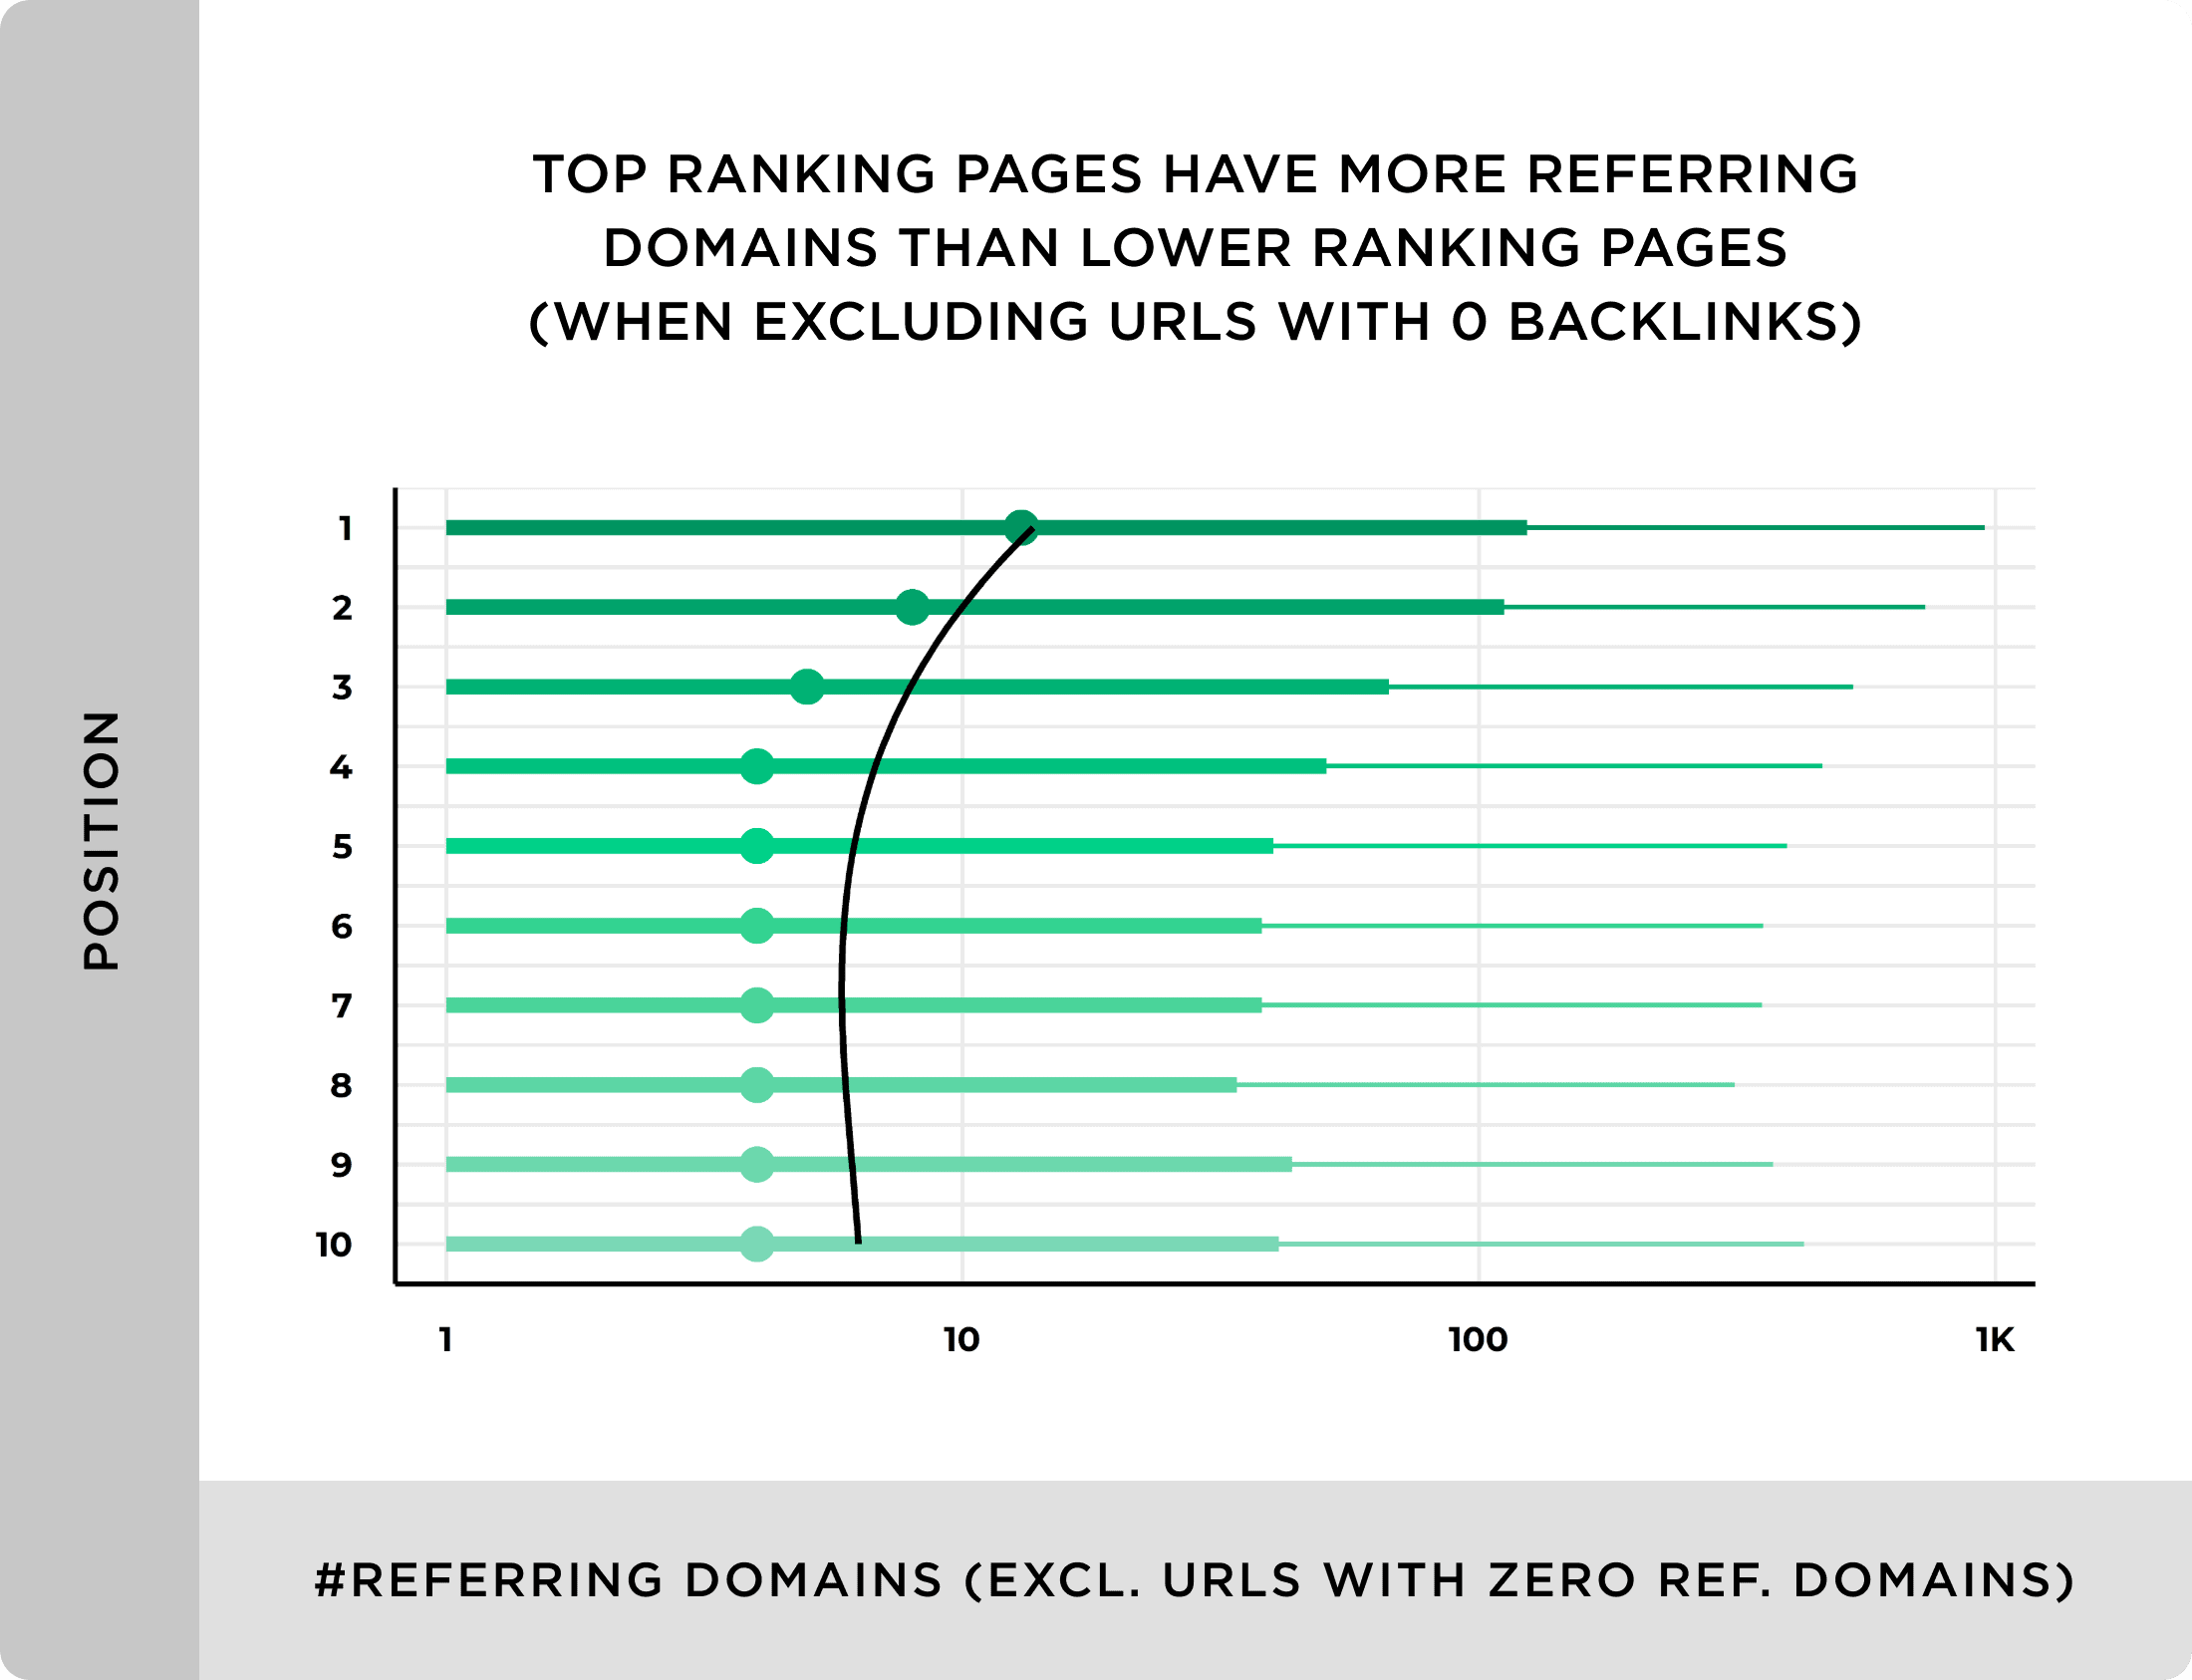 Top ranking pages have more referring domains than lower ranking pages